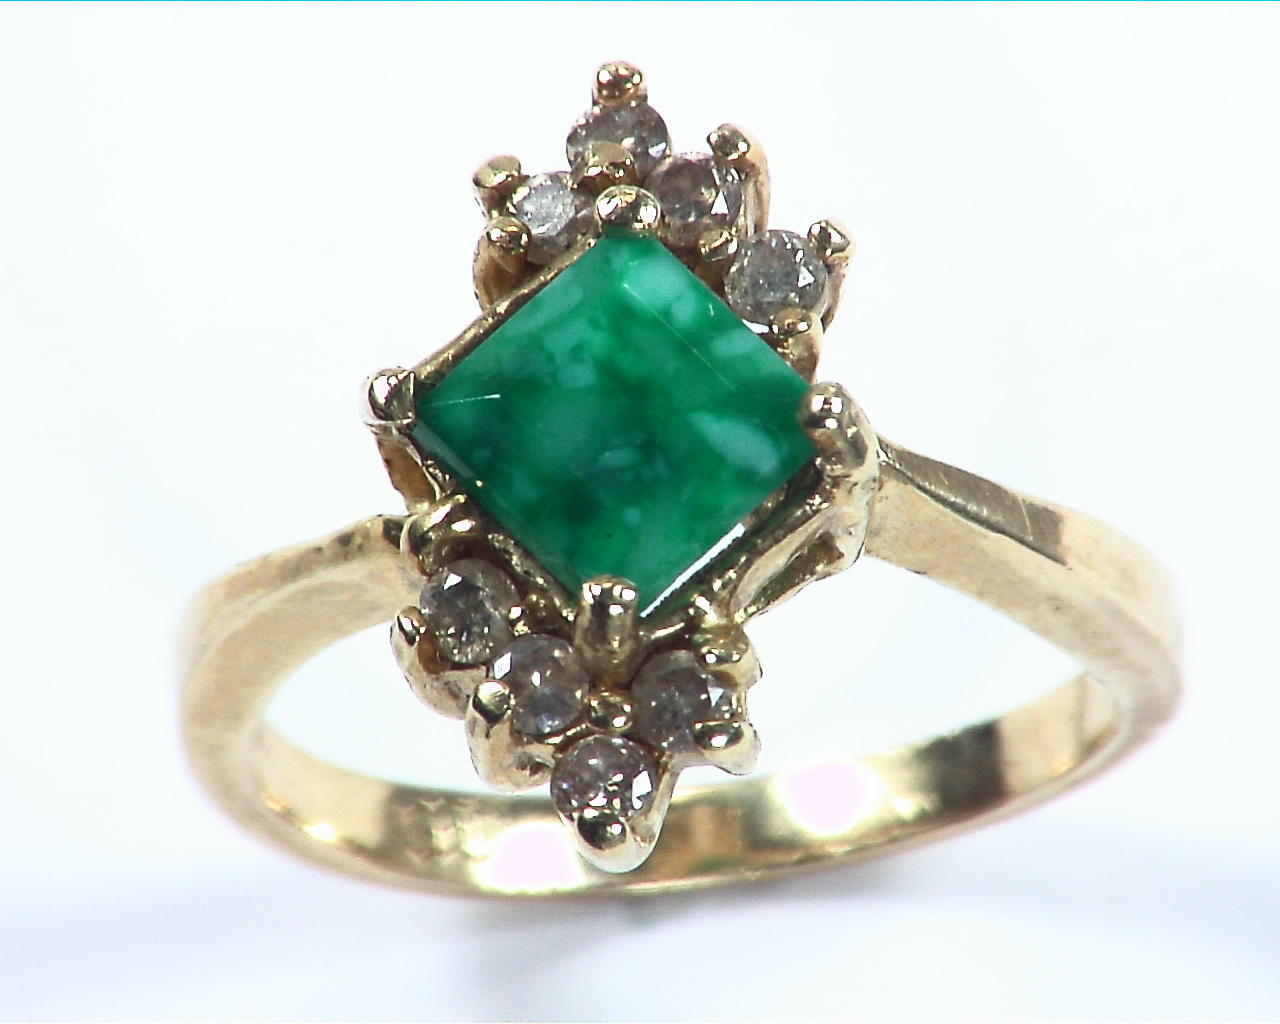 Emerald Natural Genuine Gemstone Gold And Diamond Ring RFK,158 3